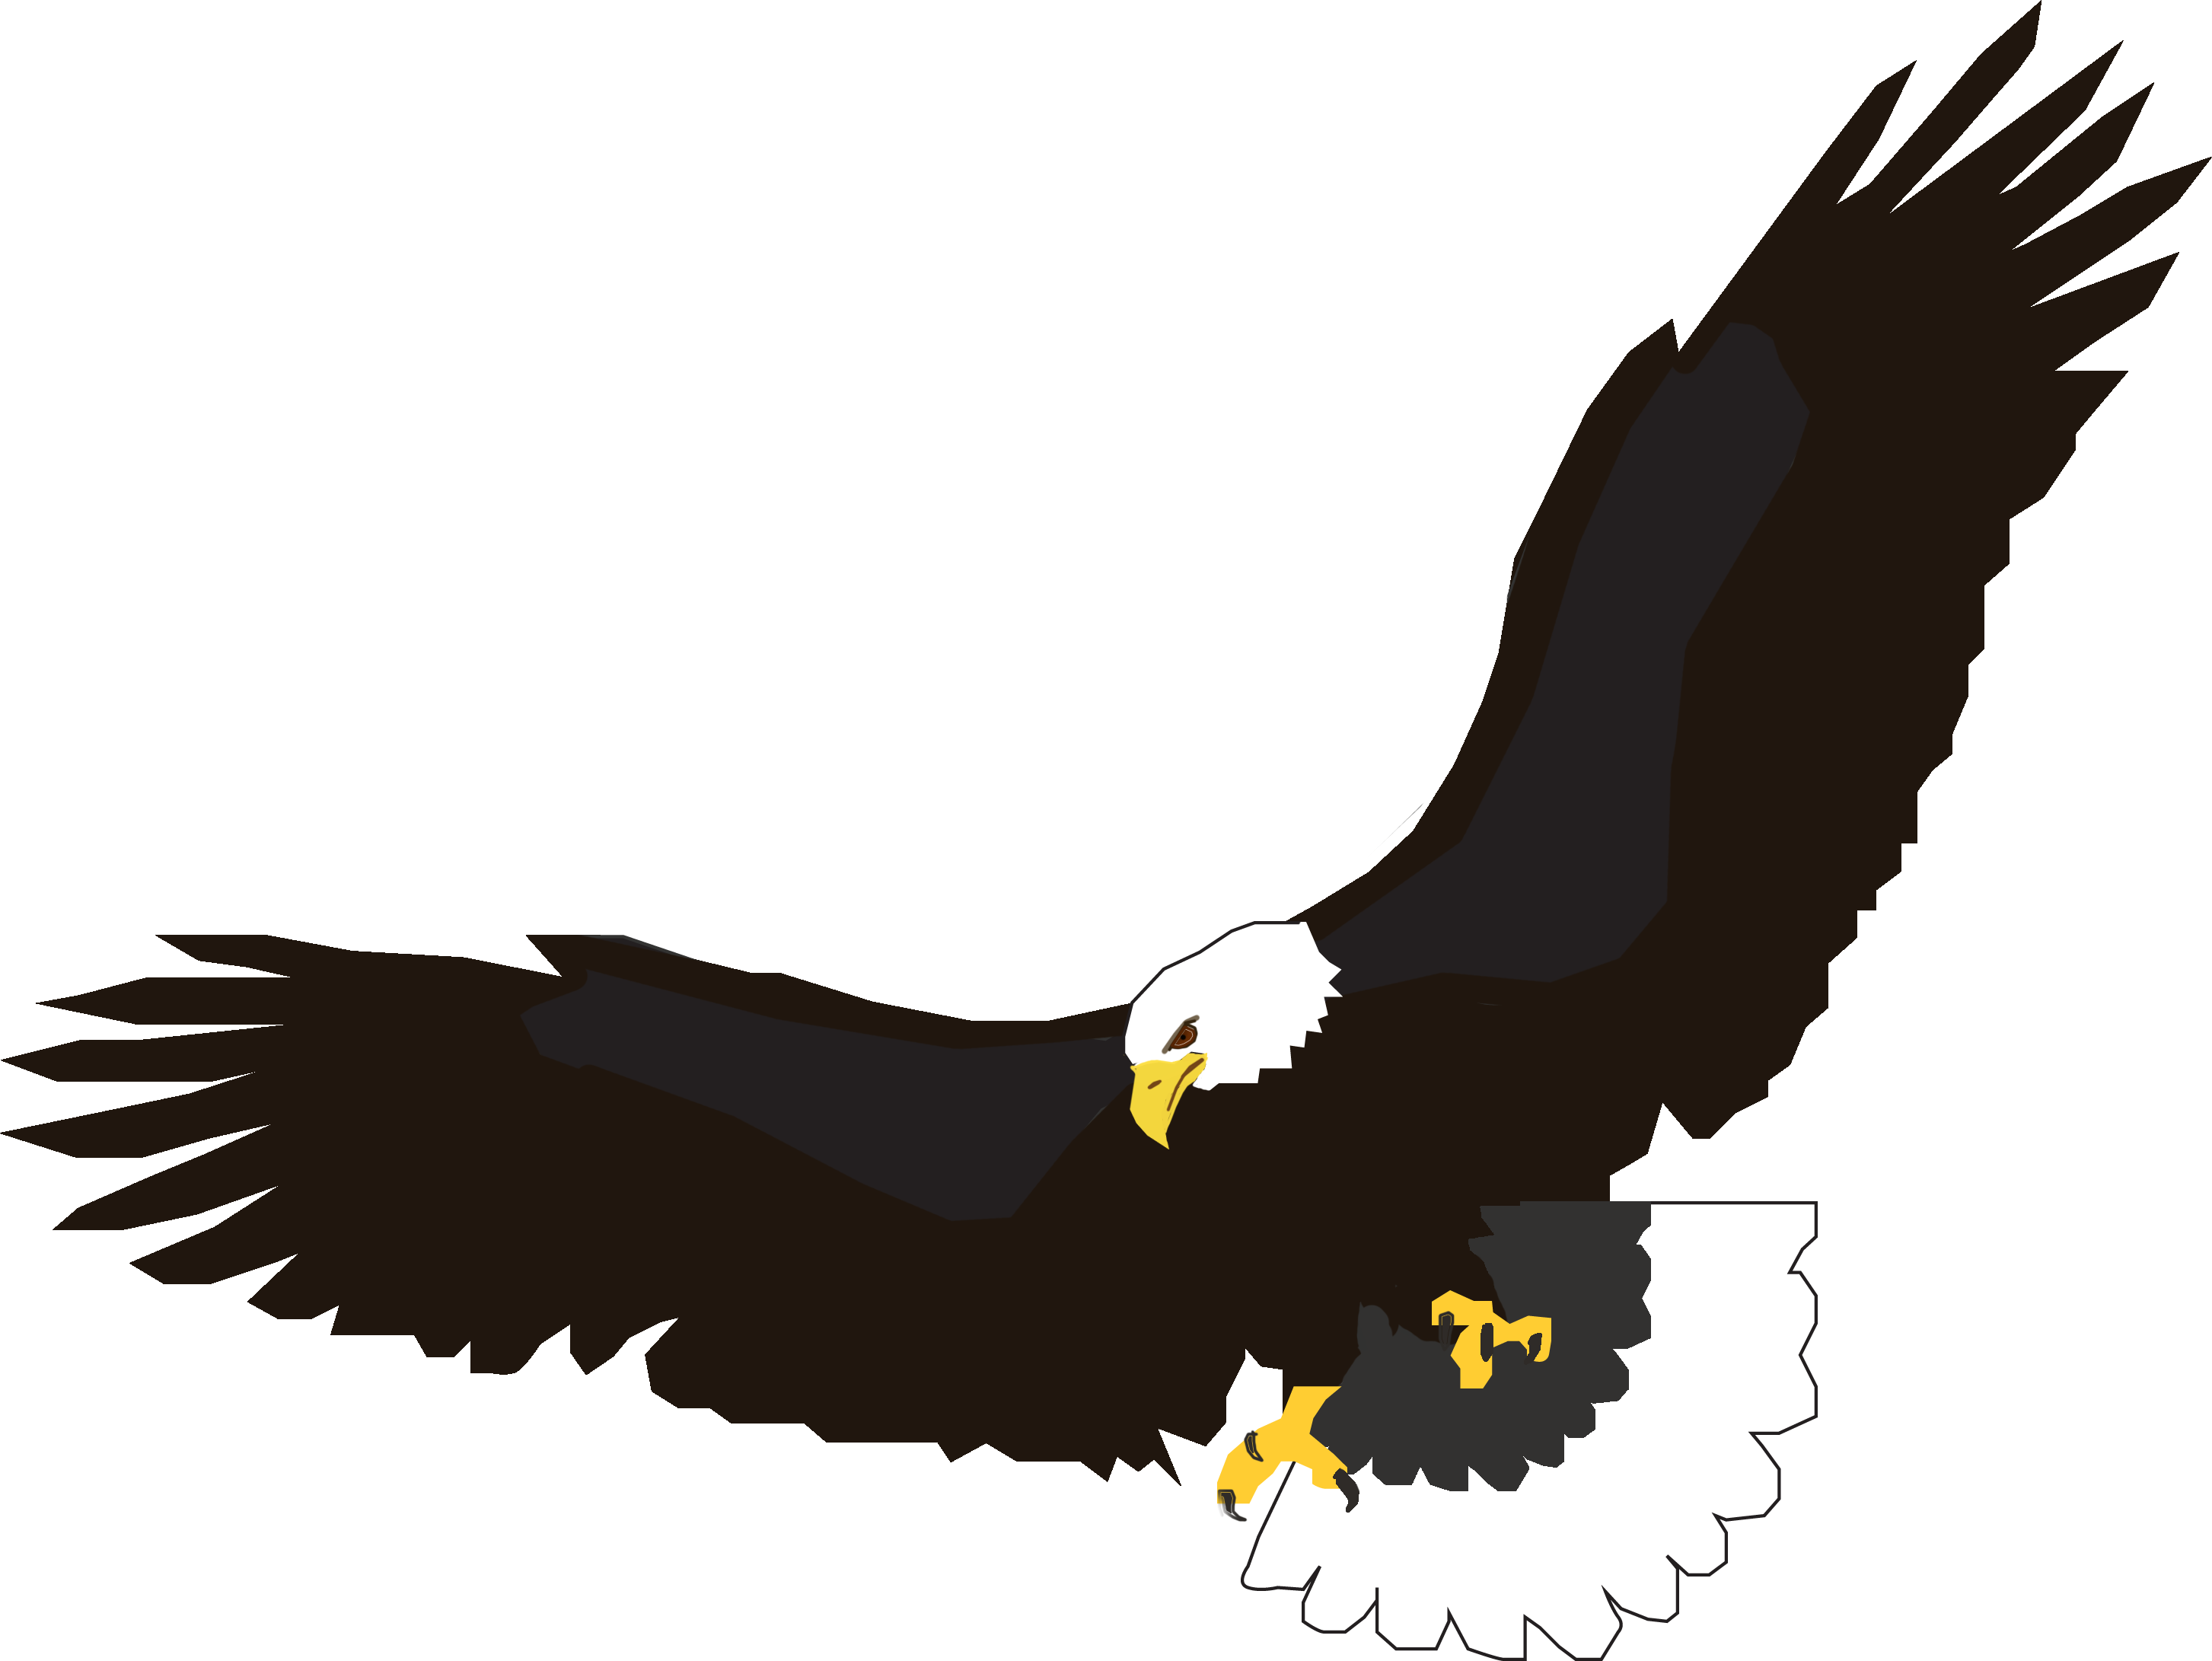 Soaring eagle clipart banner Bird Wings Clipart | Free download best Bird Wings Clipart on ... banner